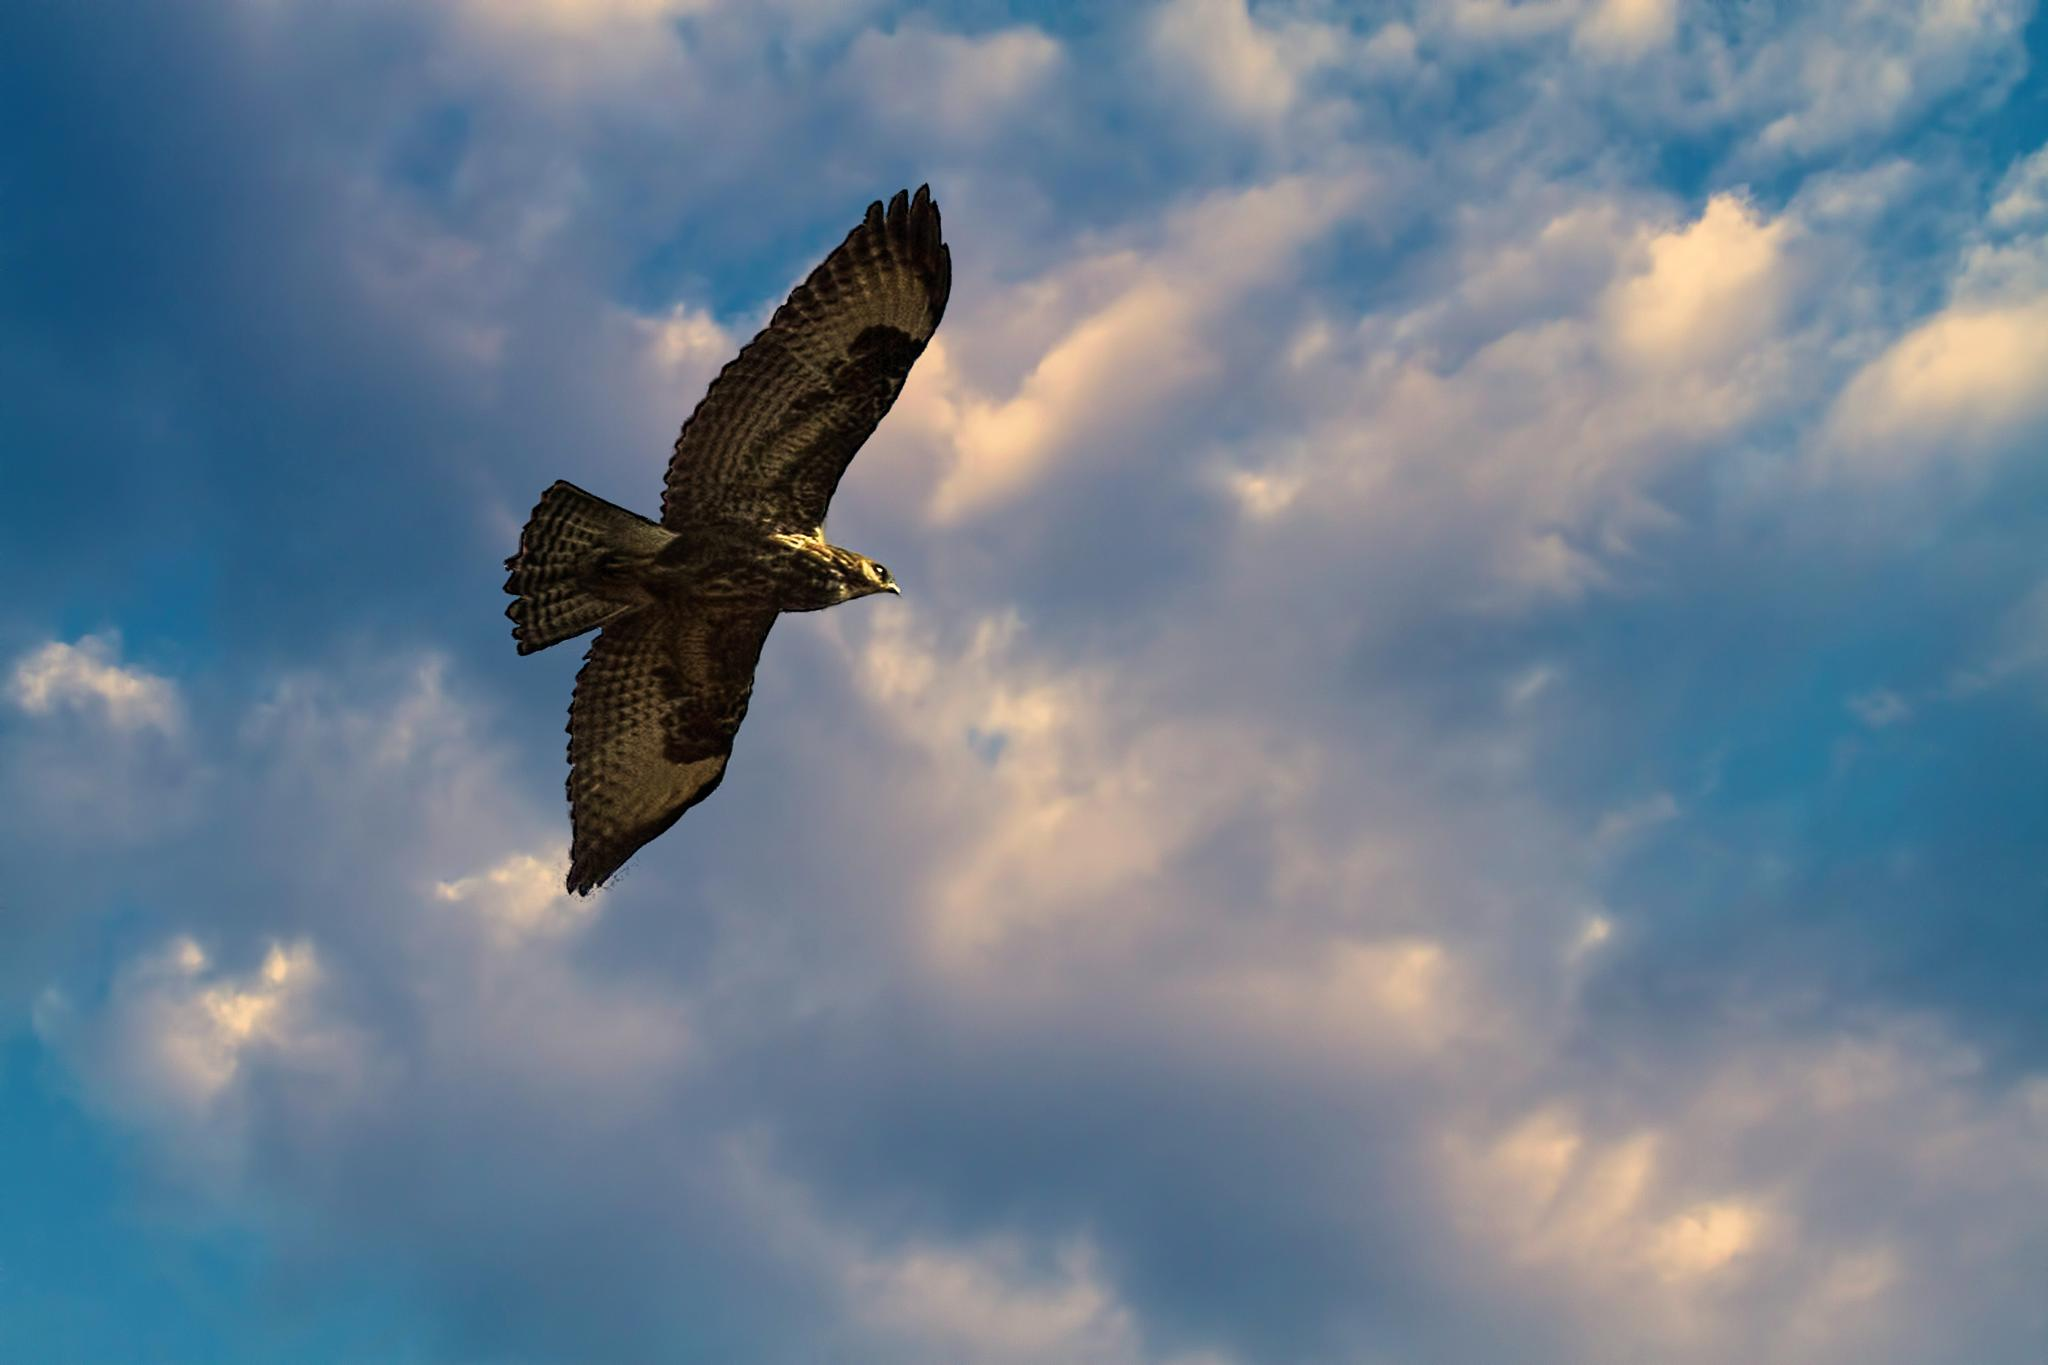 Buzzard by mike59